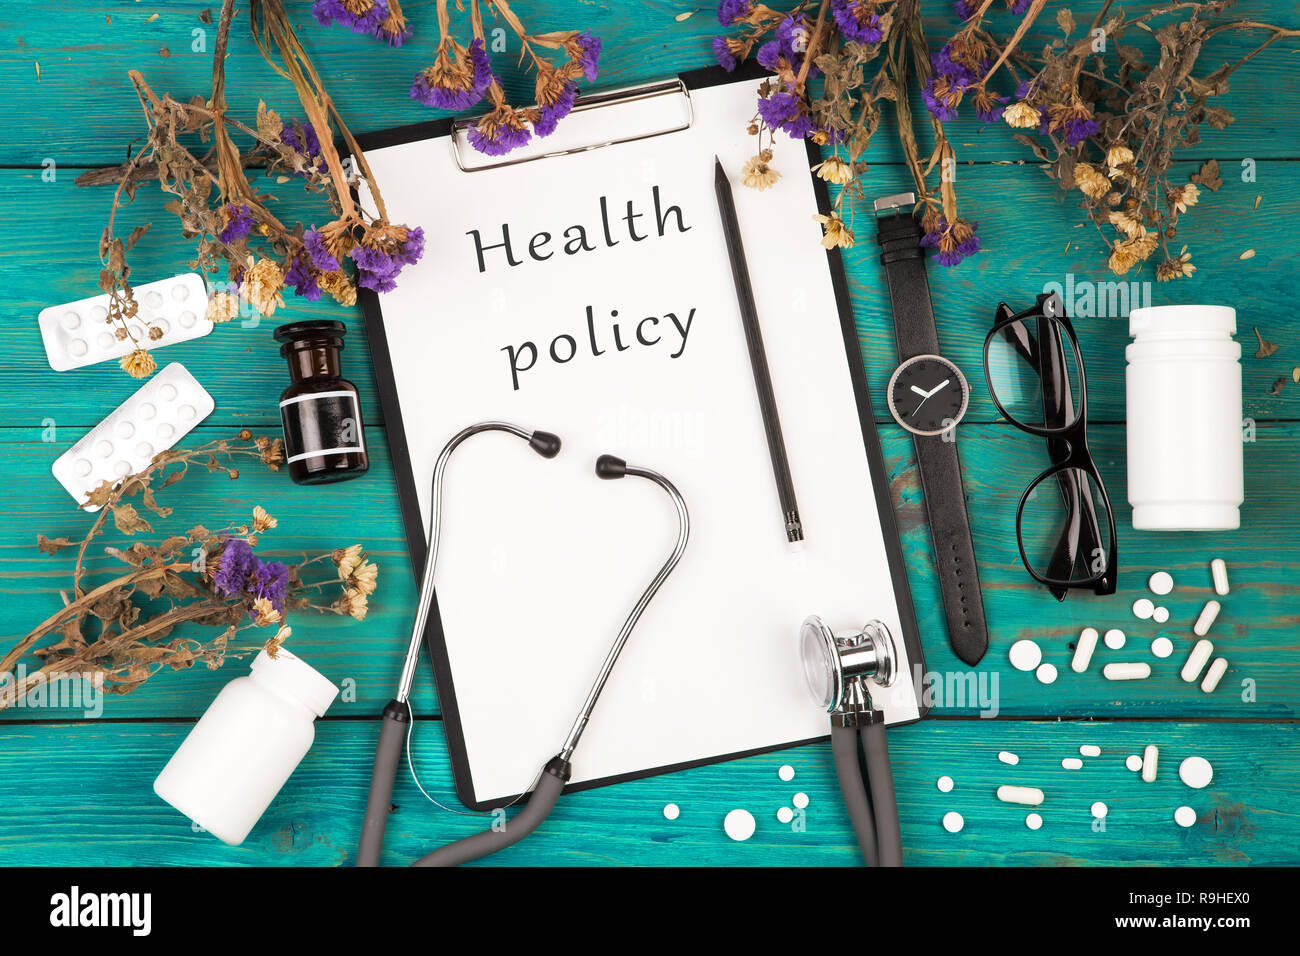 Workplace of doctor - stethoscope, medicine clipboard with text 'Health policy', bottle, glasses, watch and pills on blue wooden table - Stock Image